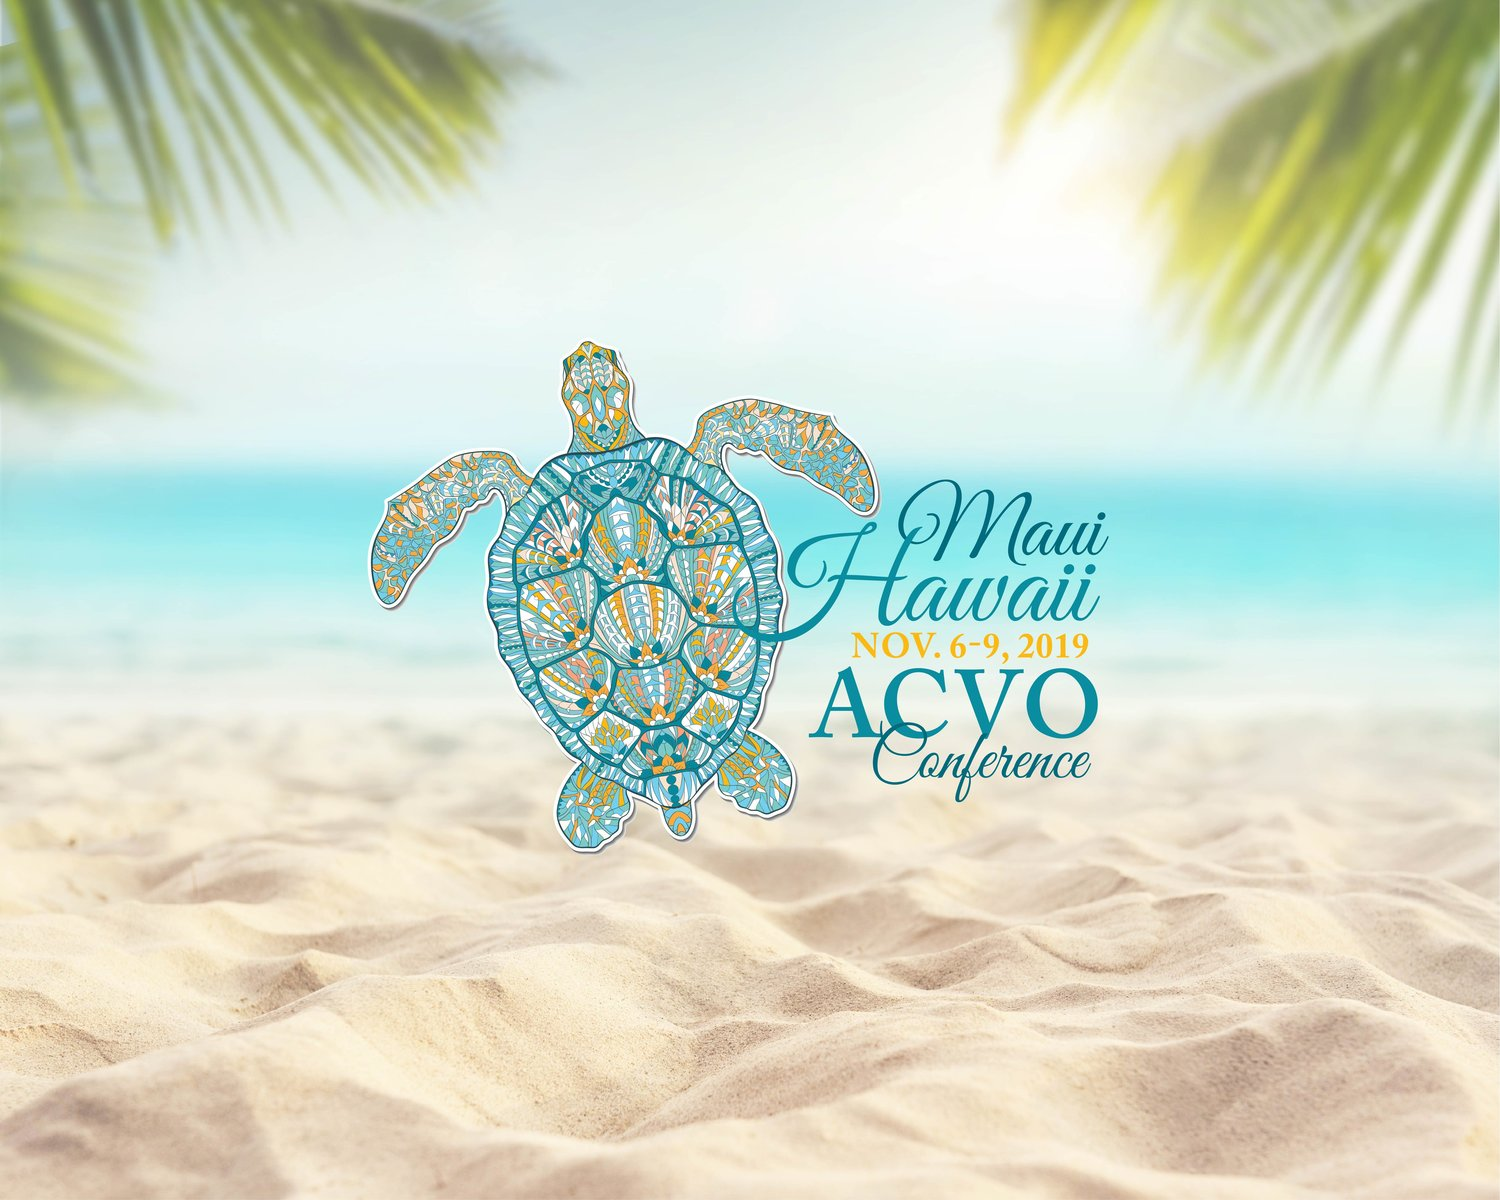 50th Annual Meeting ACVO, Maui, Hawaii, Nov 6-9, 2019